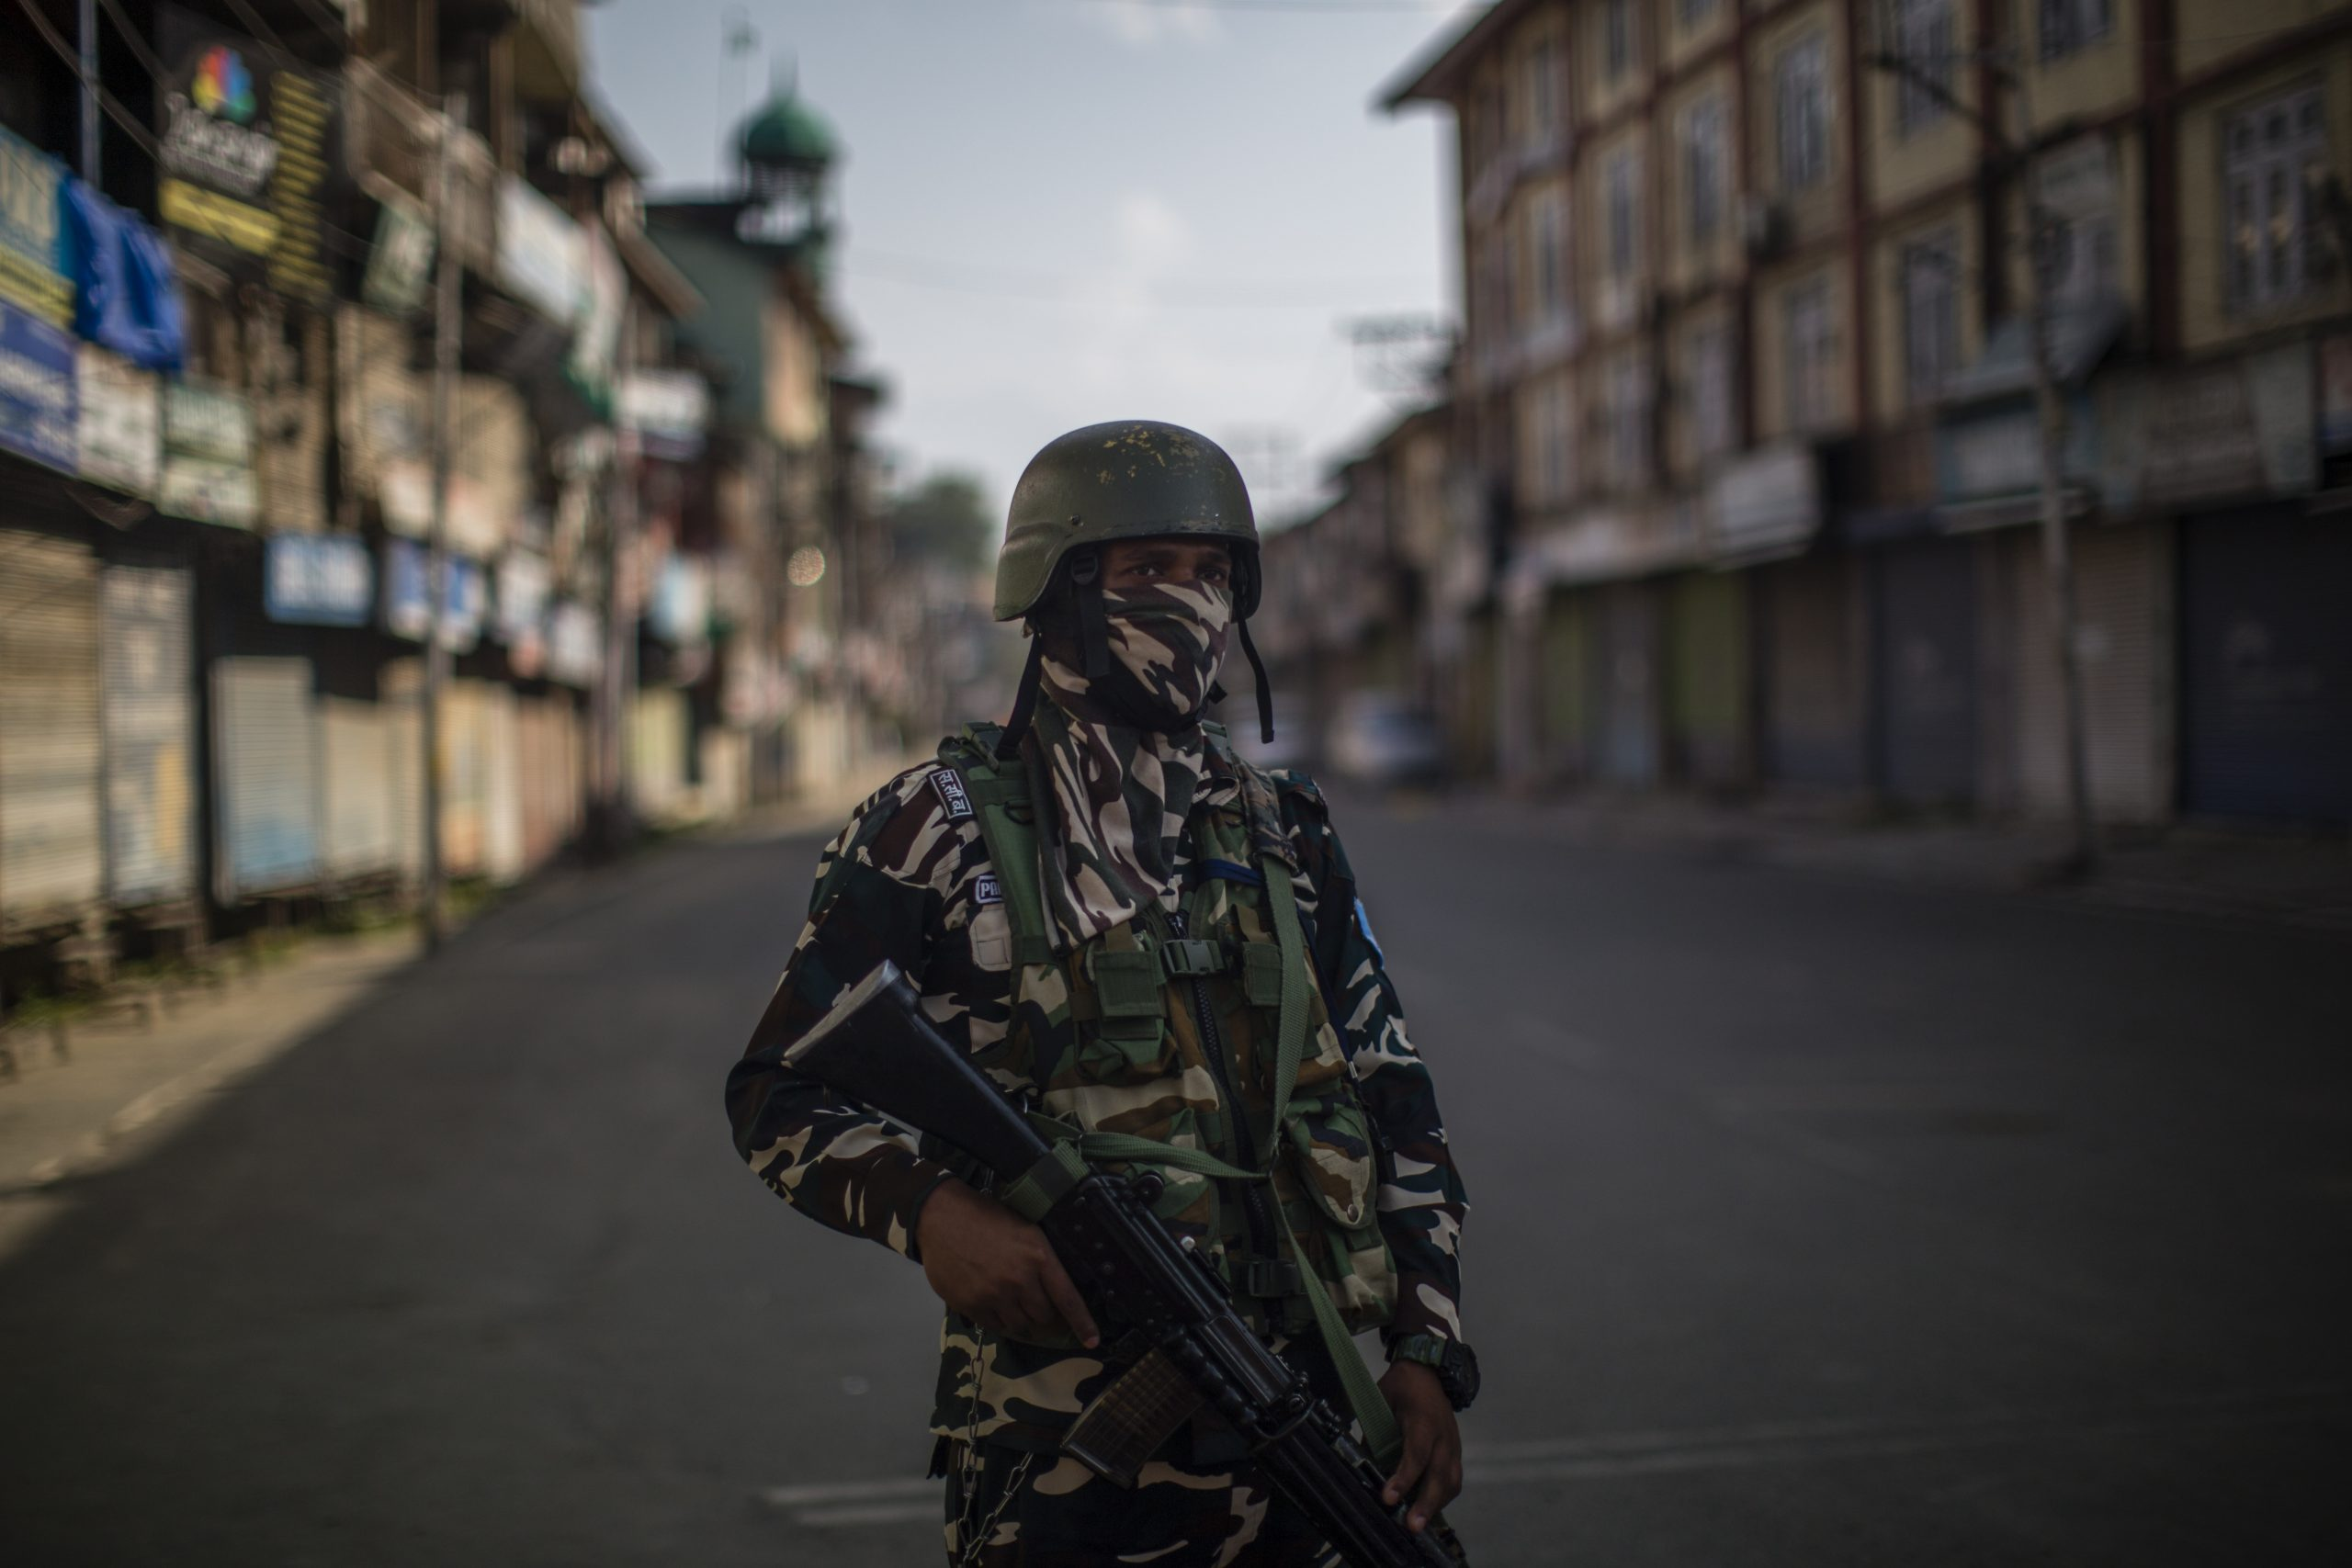 An Indian paramilitary trooper stands guard on a deserted road in the city center's commercial hub, during a curfew on August 04, 2020  in Srinagar, the summer capital of Indian administered Kashmir, India.  (Photo by Yawar Nazir/Getty Images)